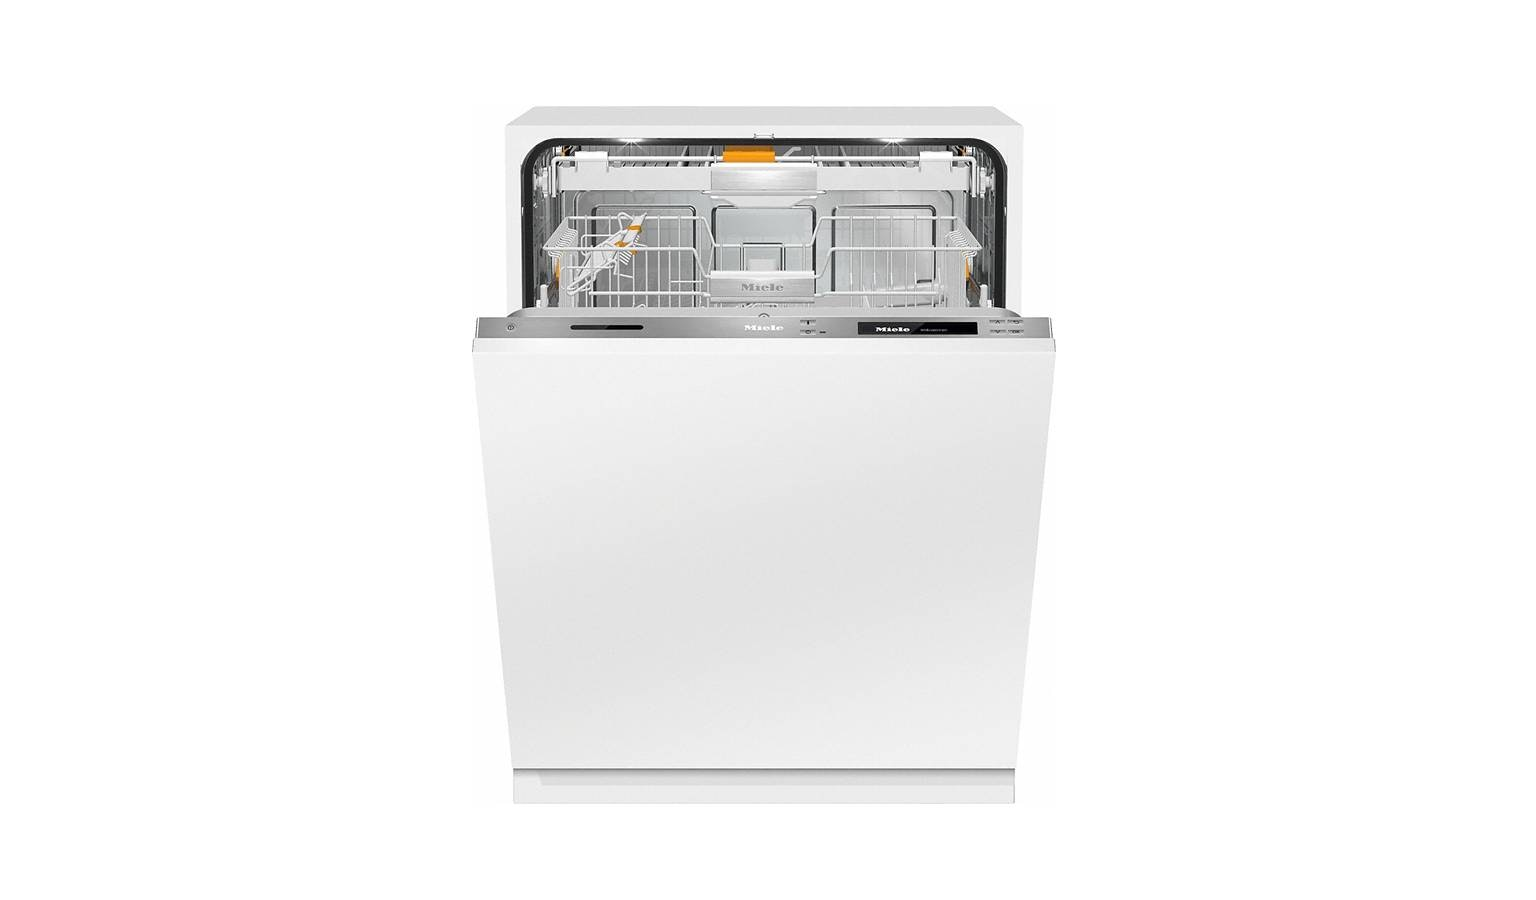 Miele G 6993 SCVi K2O Fully Integrated Dishwasher - 01